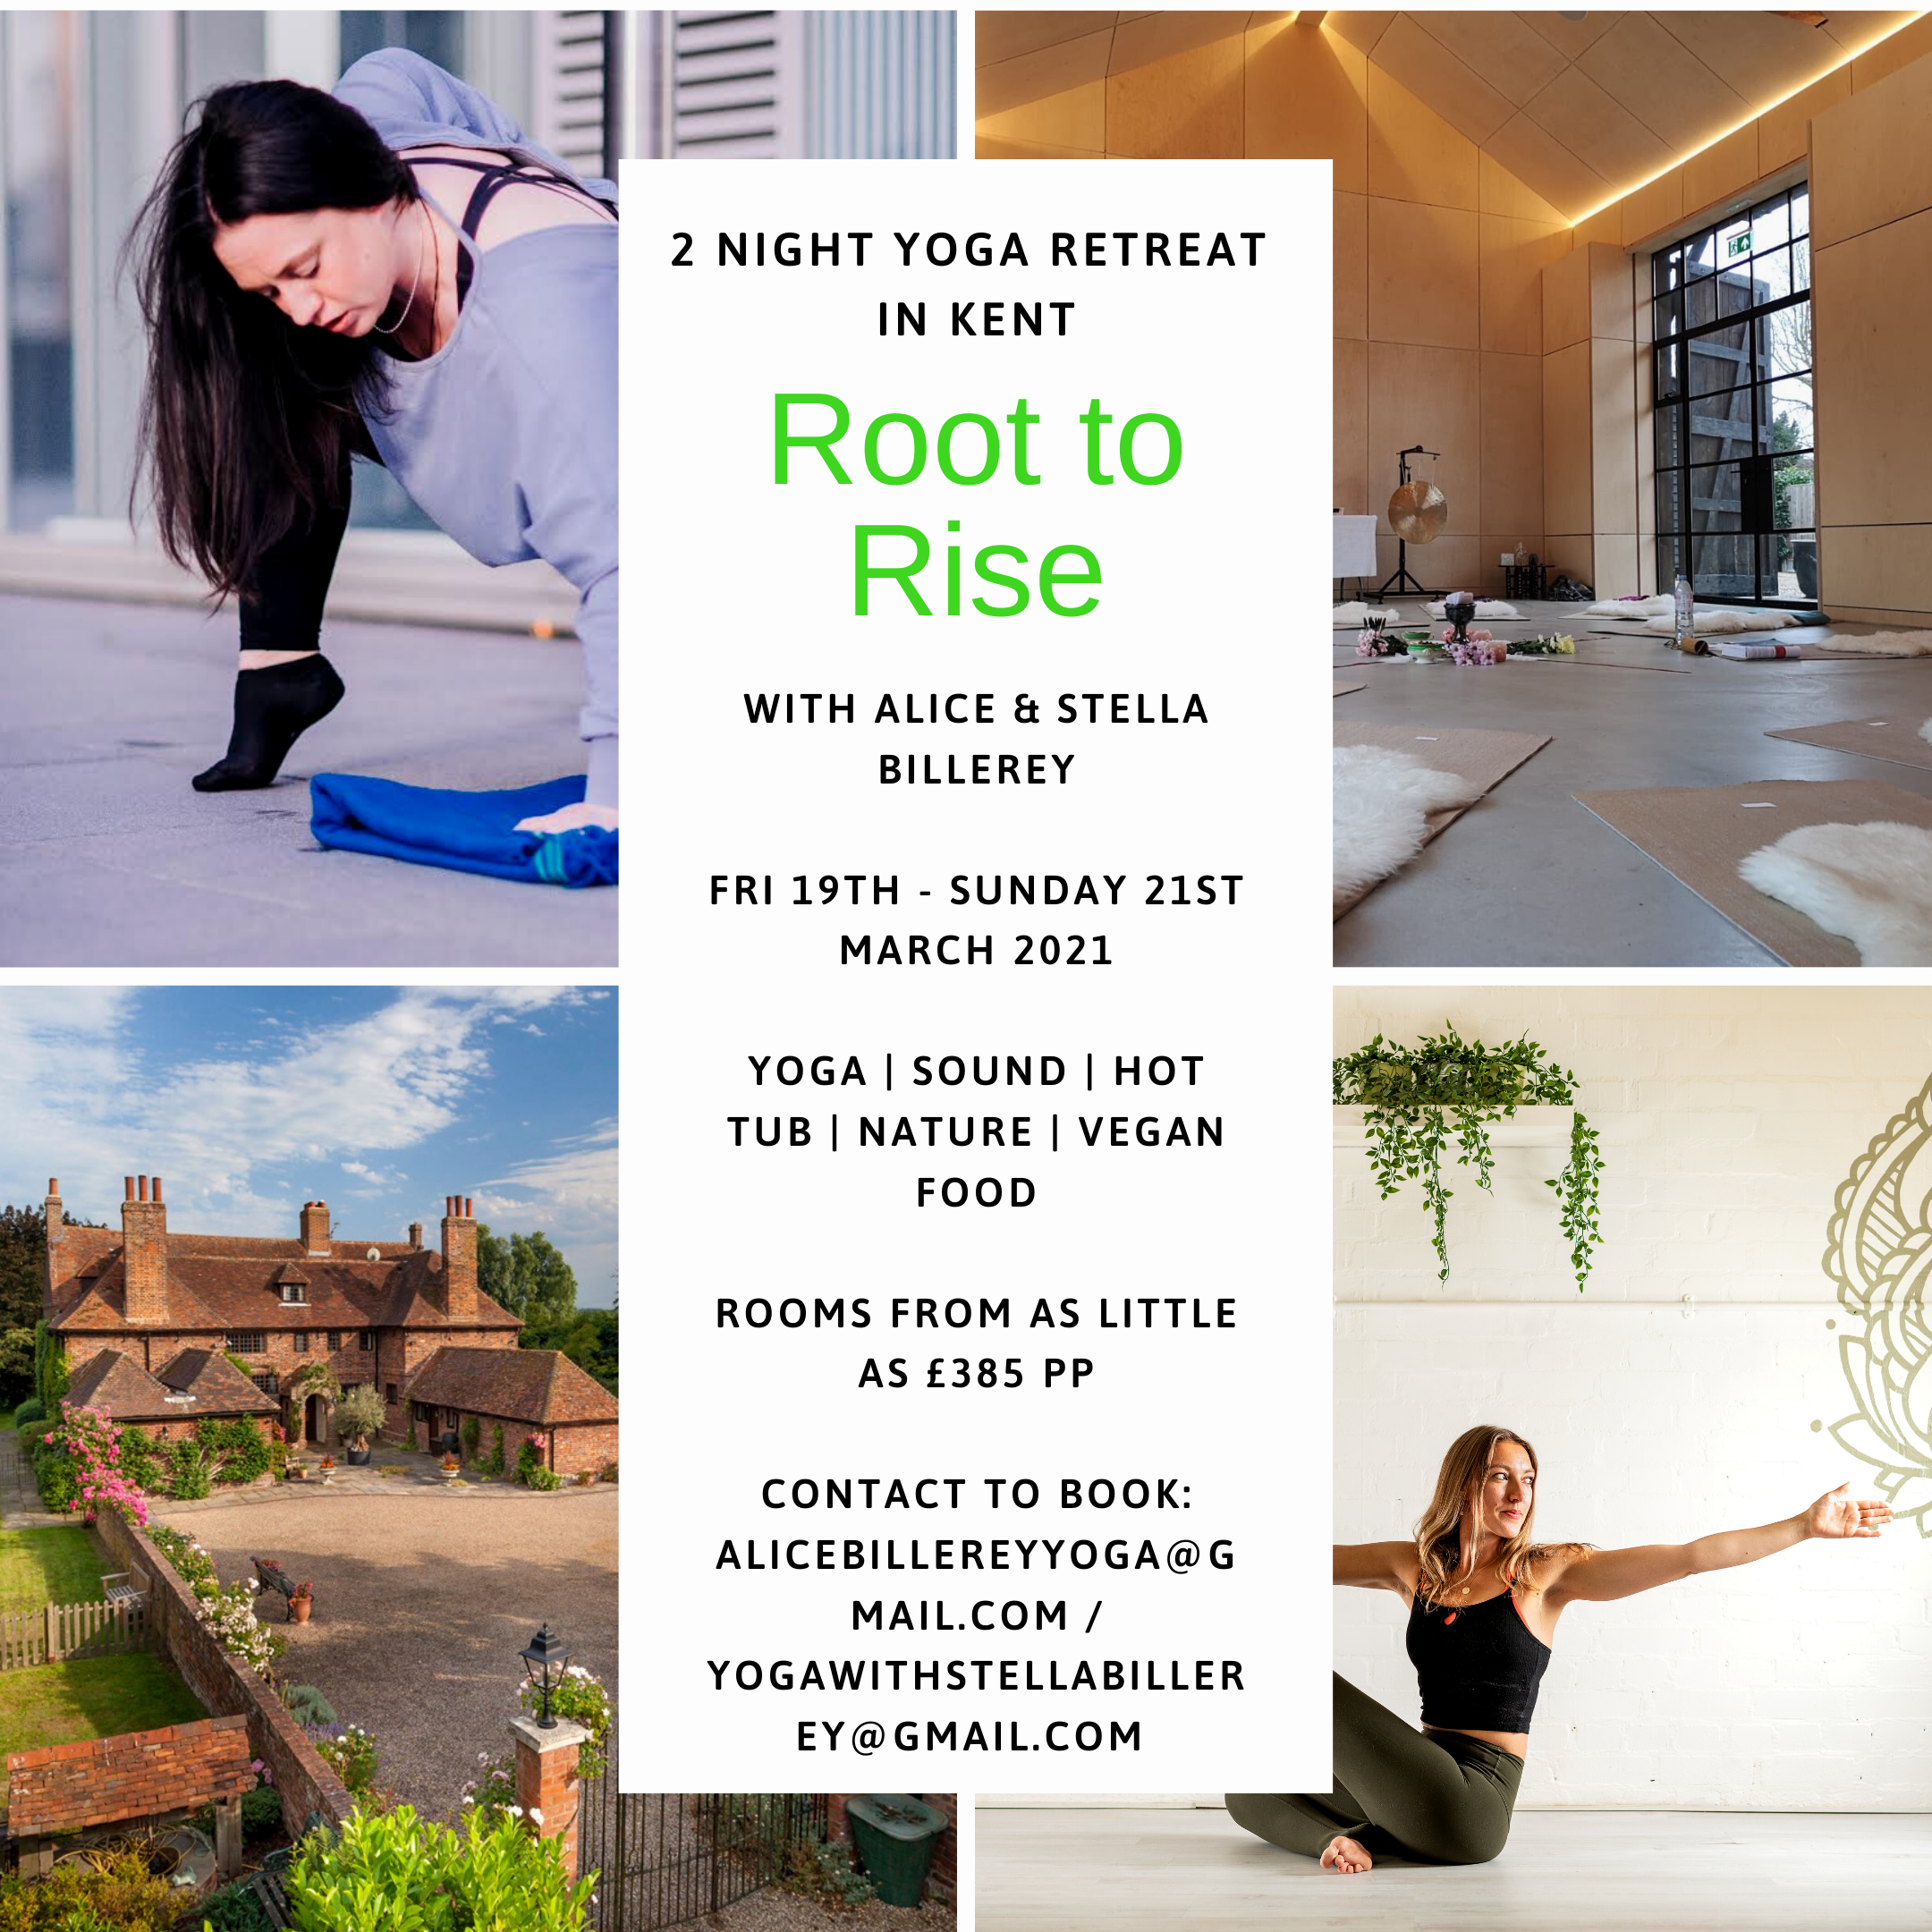 'Root to Rise' ~ 2 Night Yoga Retreat in Kent